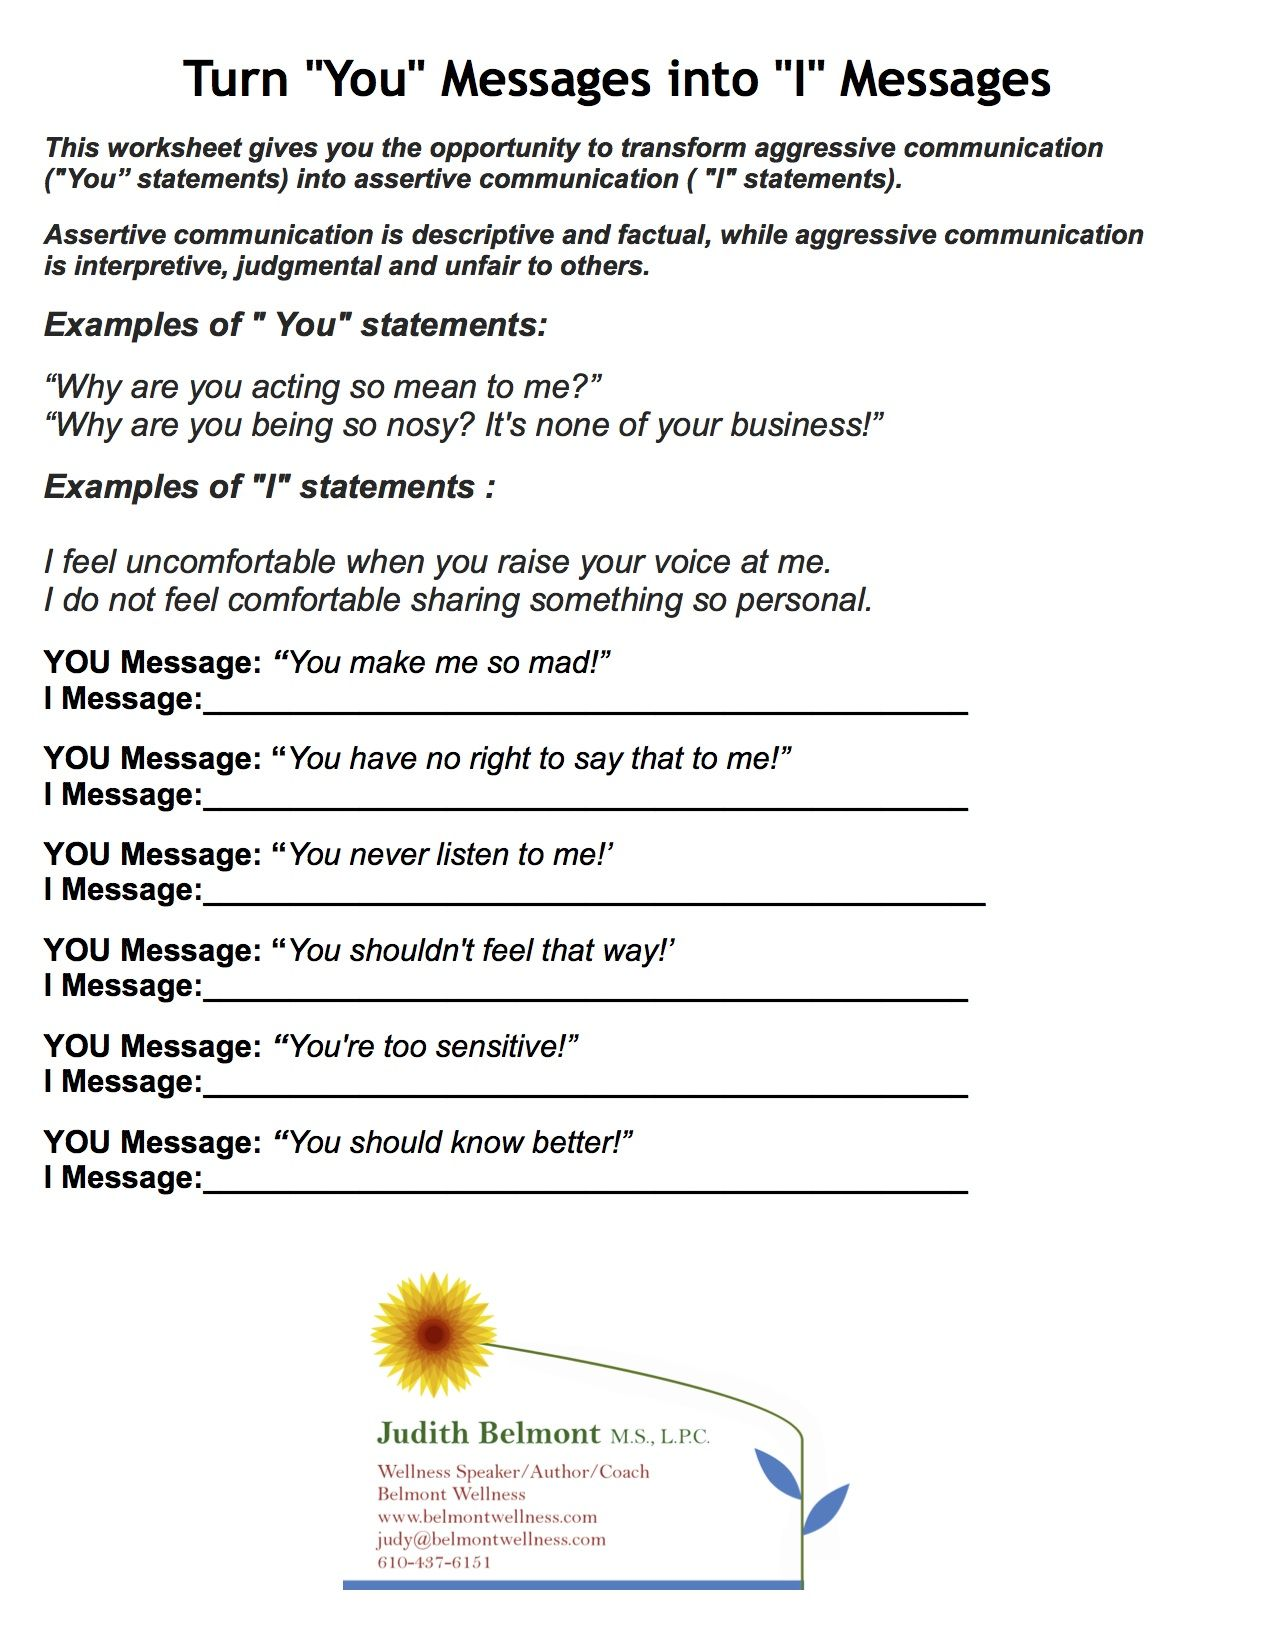 worksheet Mental Health Group Worksheets these are games and activities that great for team building anyone or any group wanting to improve social skills com